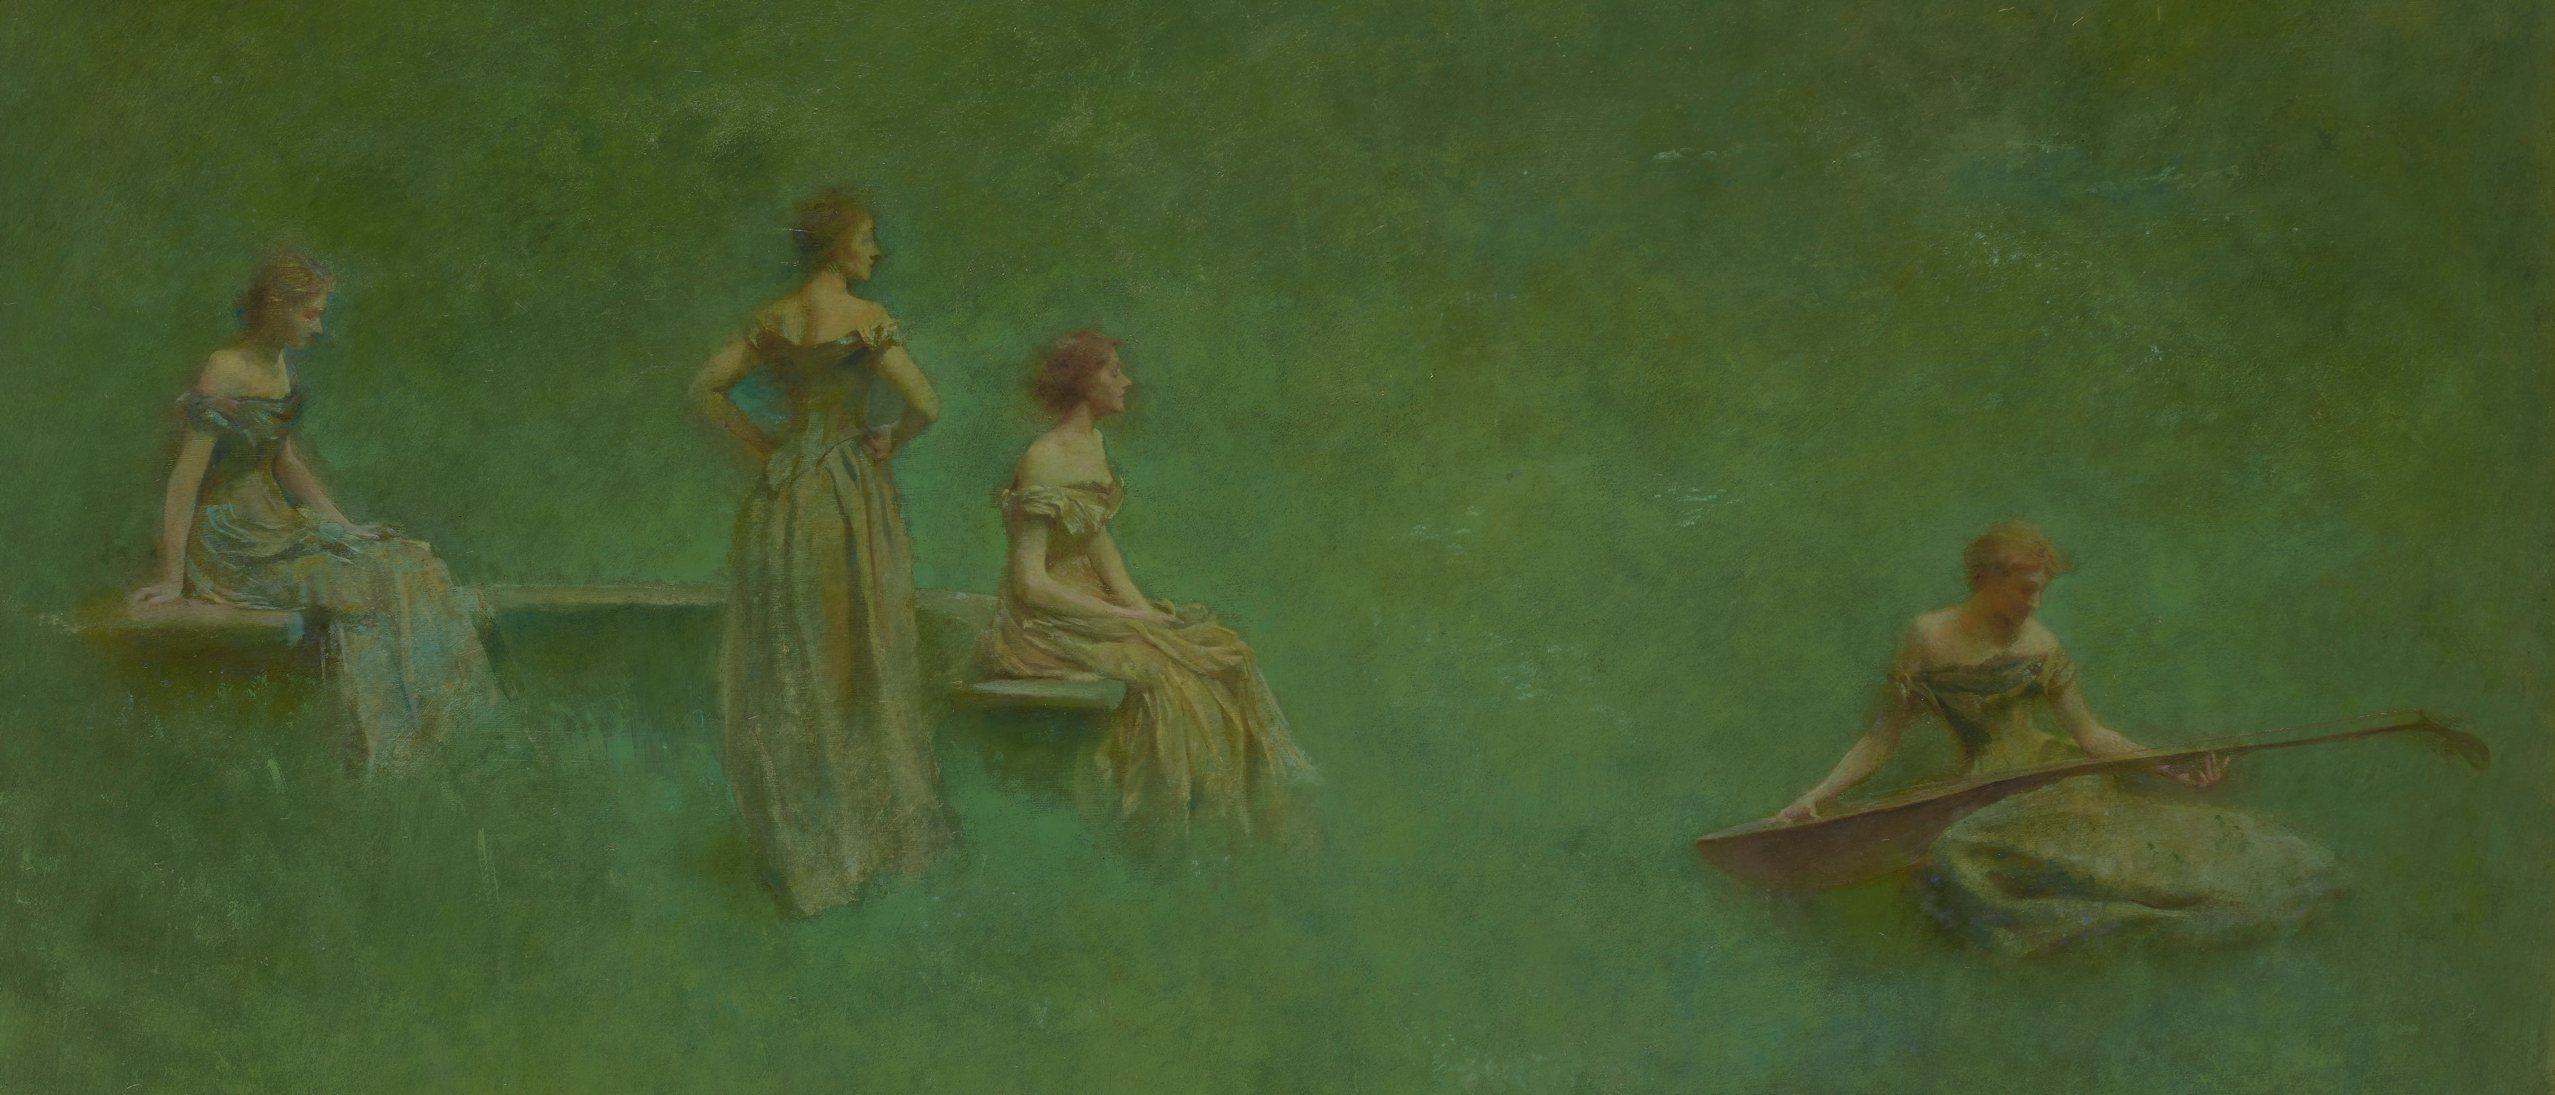 four women in gowns against a green background. two women are seated and one standing to the left. they are listening to the fourth women playing a stringed instrument on the right